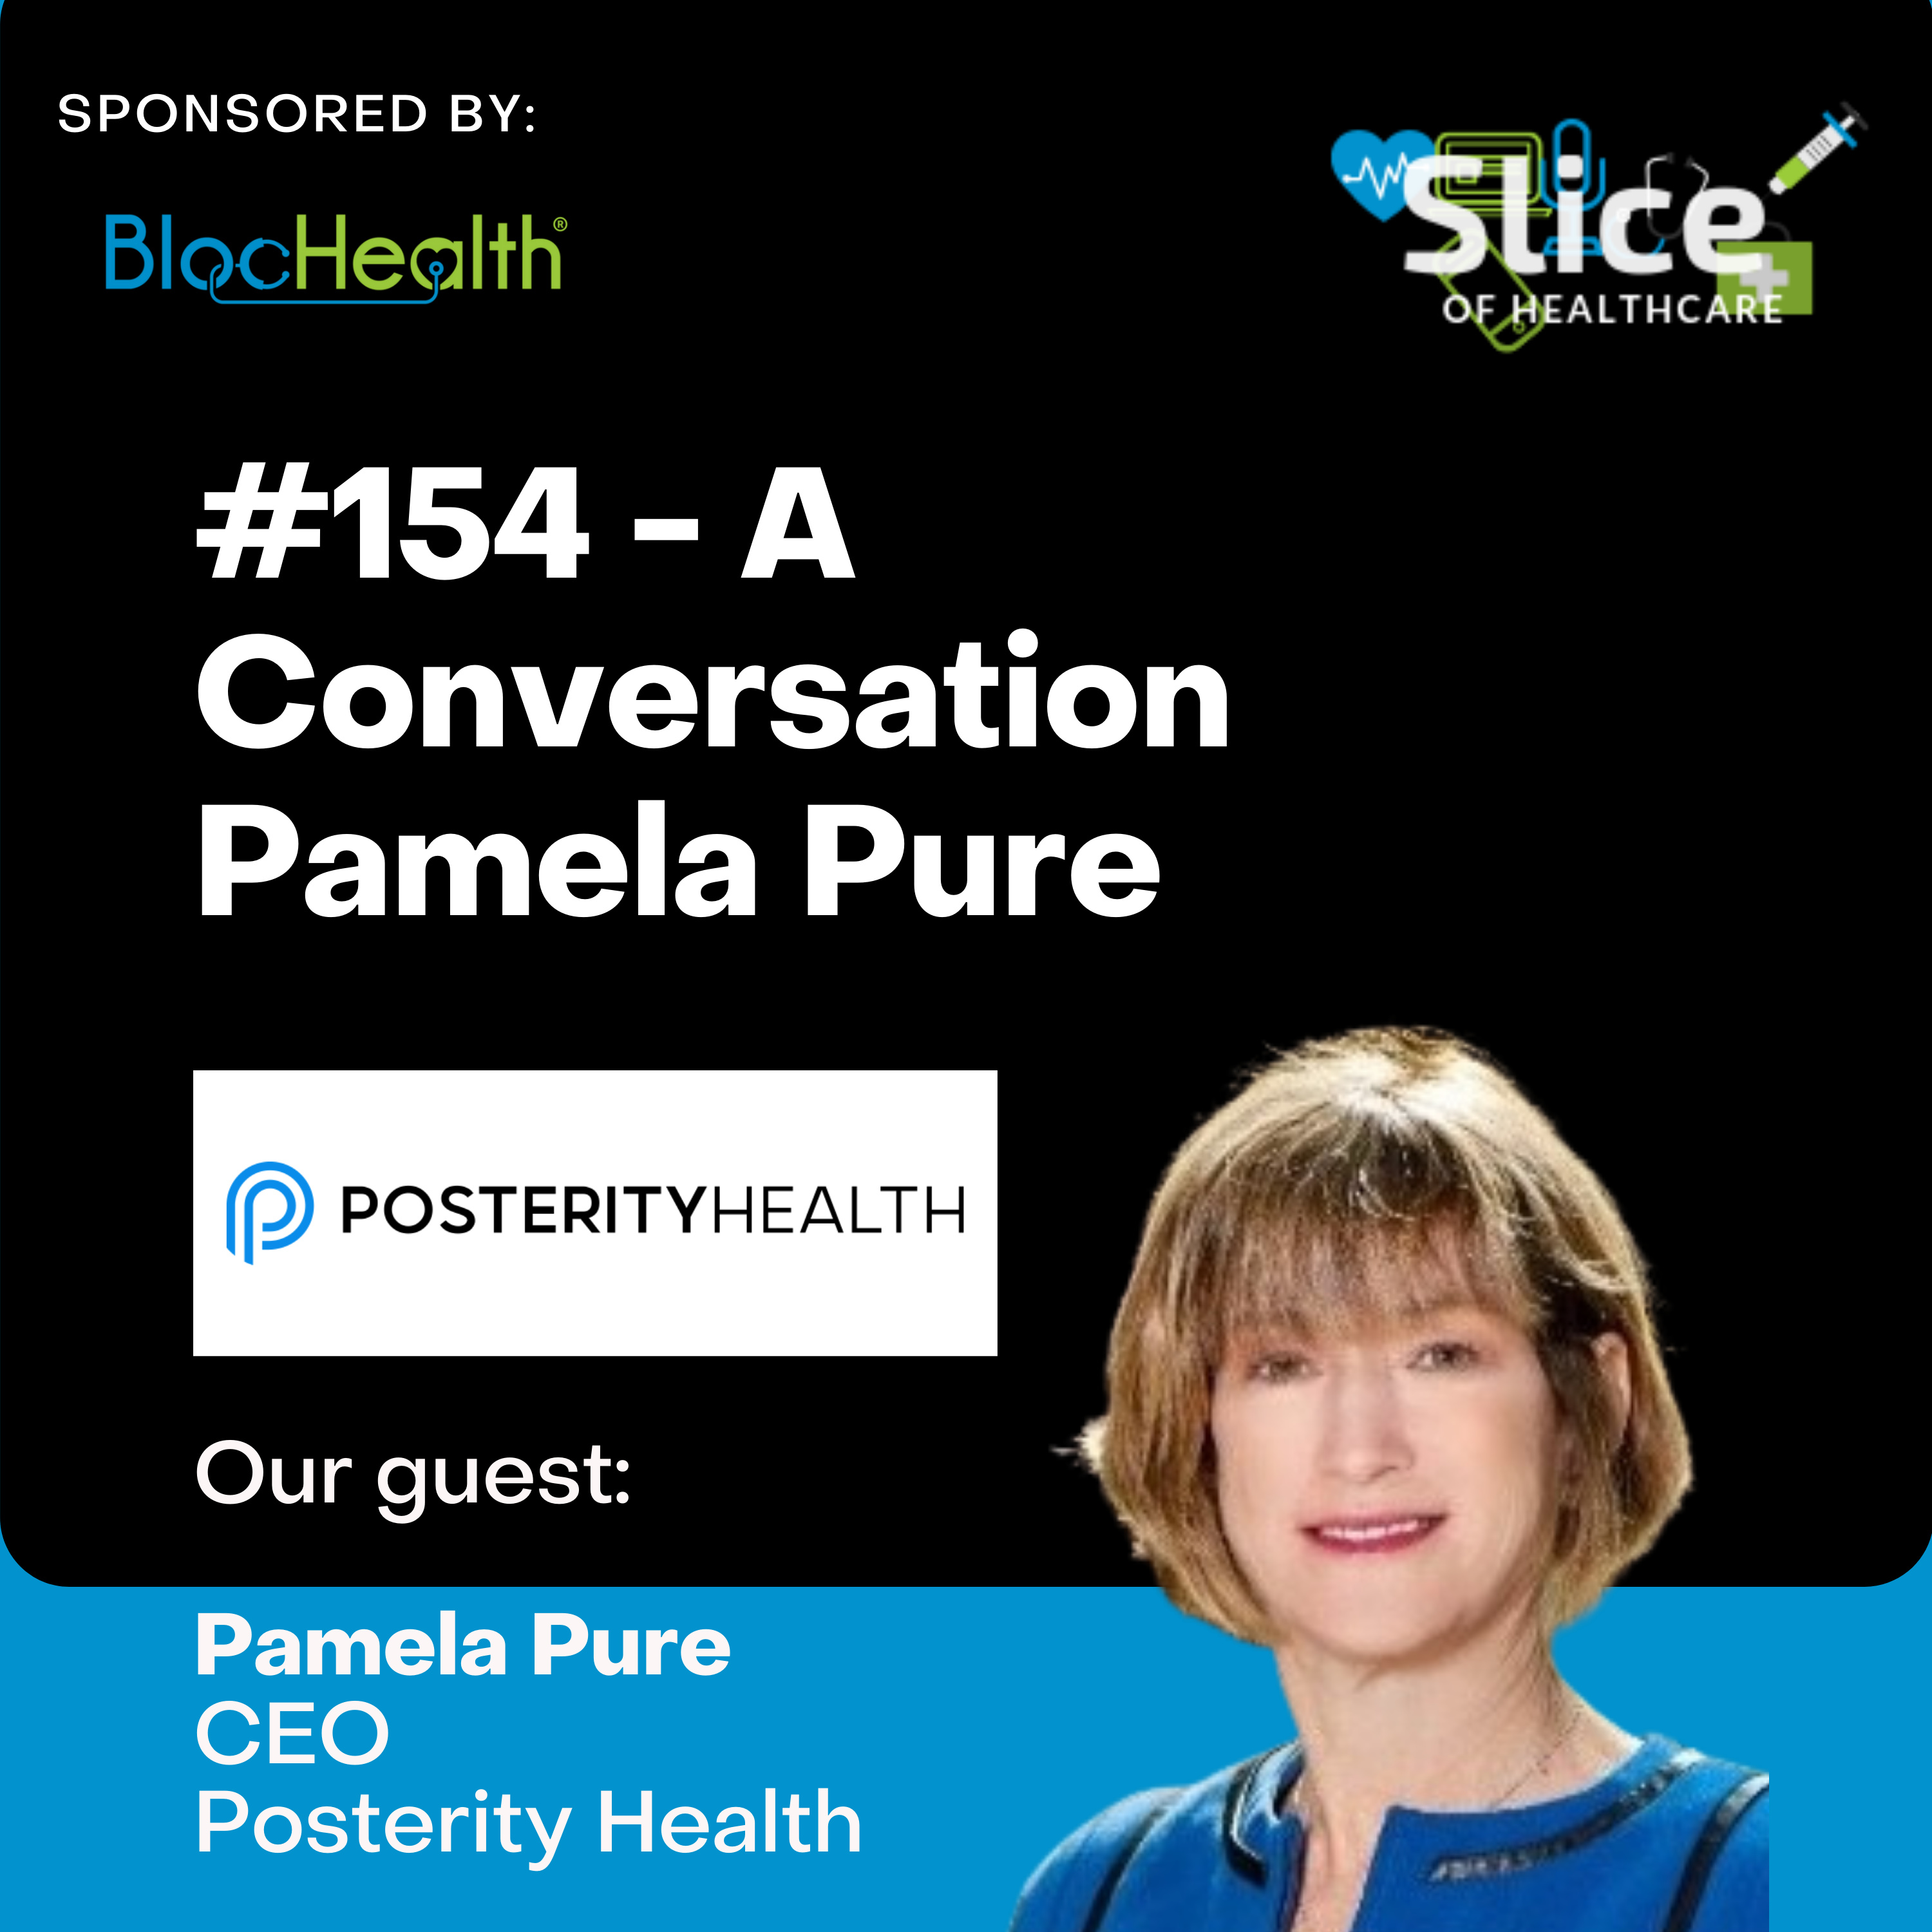 #154 - Pamela Pure, CEO at Posterity Health